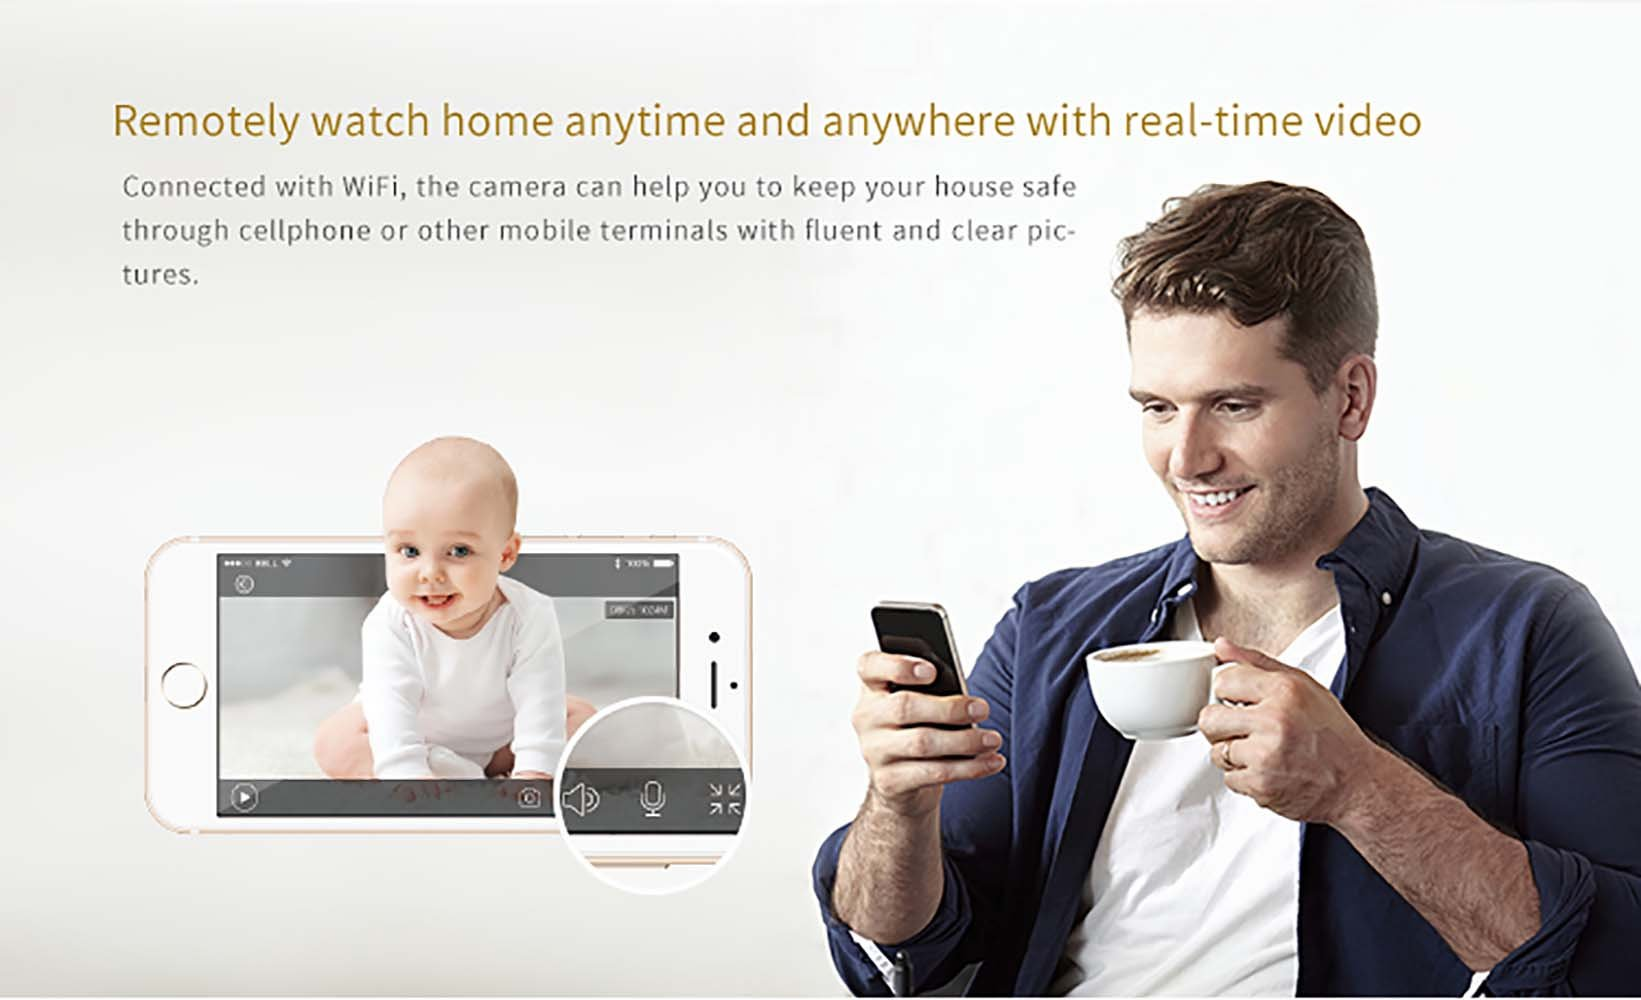 Clever dog Wireless security wifi cameras Smart Surveillance camera(Grey) Clerver dog Wireless Baby Monitor: Video, audio, alerts on smart phone and tablets, it will help you stay connected with what you love, no matter where you are via WiFi, 3G or 4G network IP camera,use your own 5V wall charger(Not included), No battery inside Support Micro SD card, up to 32GB (not included), Best motion detection distant is 4 meter to 6 meter 3